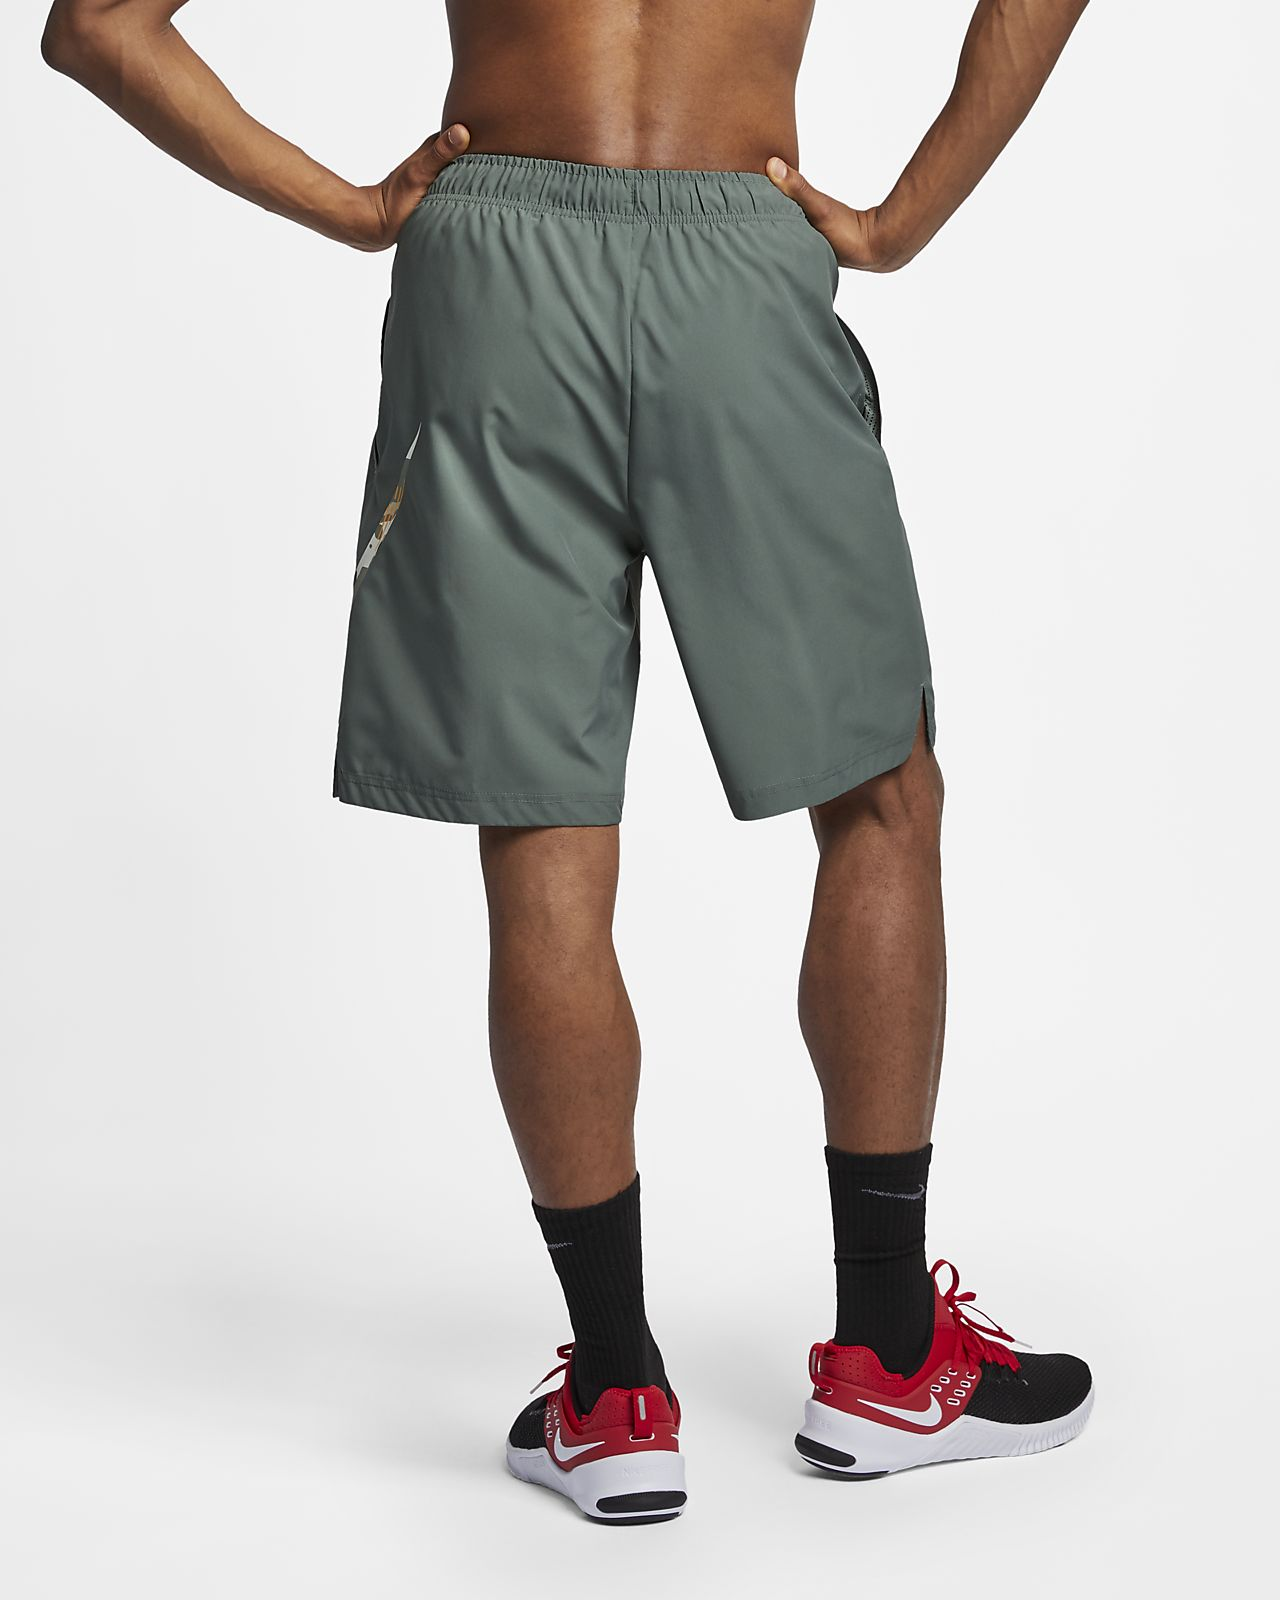 b1fc047c944 Nike Flex Men's Training Shorts. Nike.com